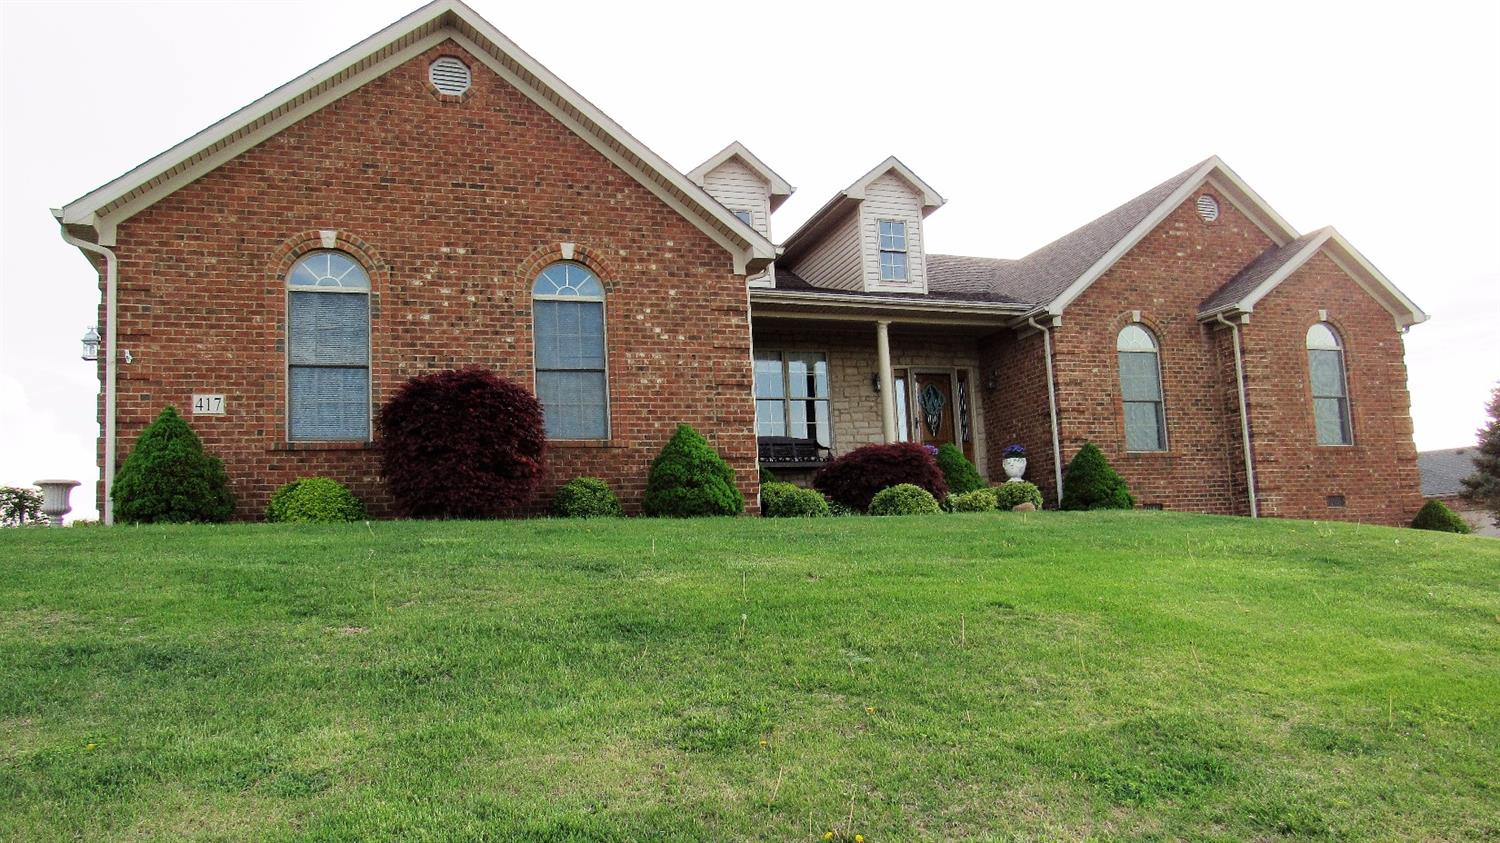 Home For Sale at 517 Shagbark Trl, Richmond, KY 40475